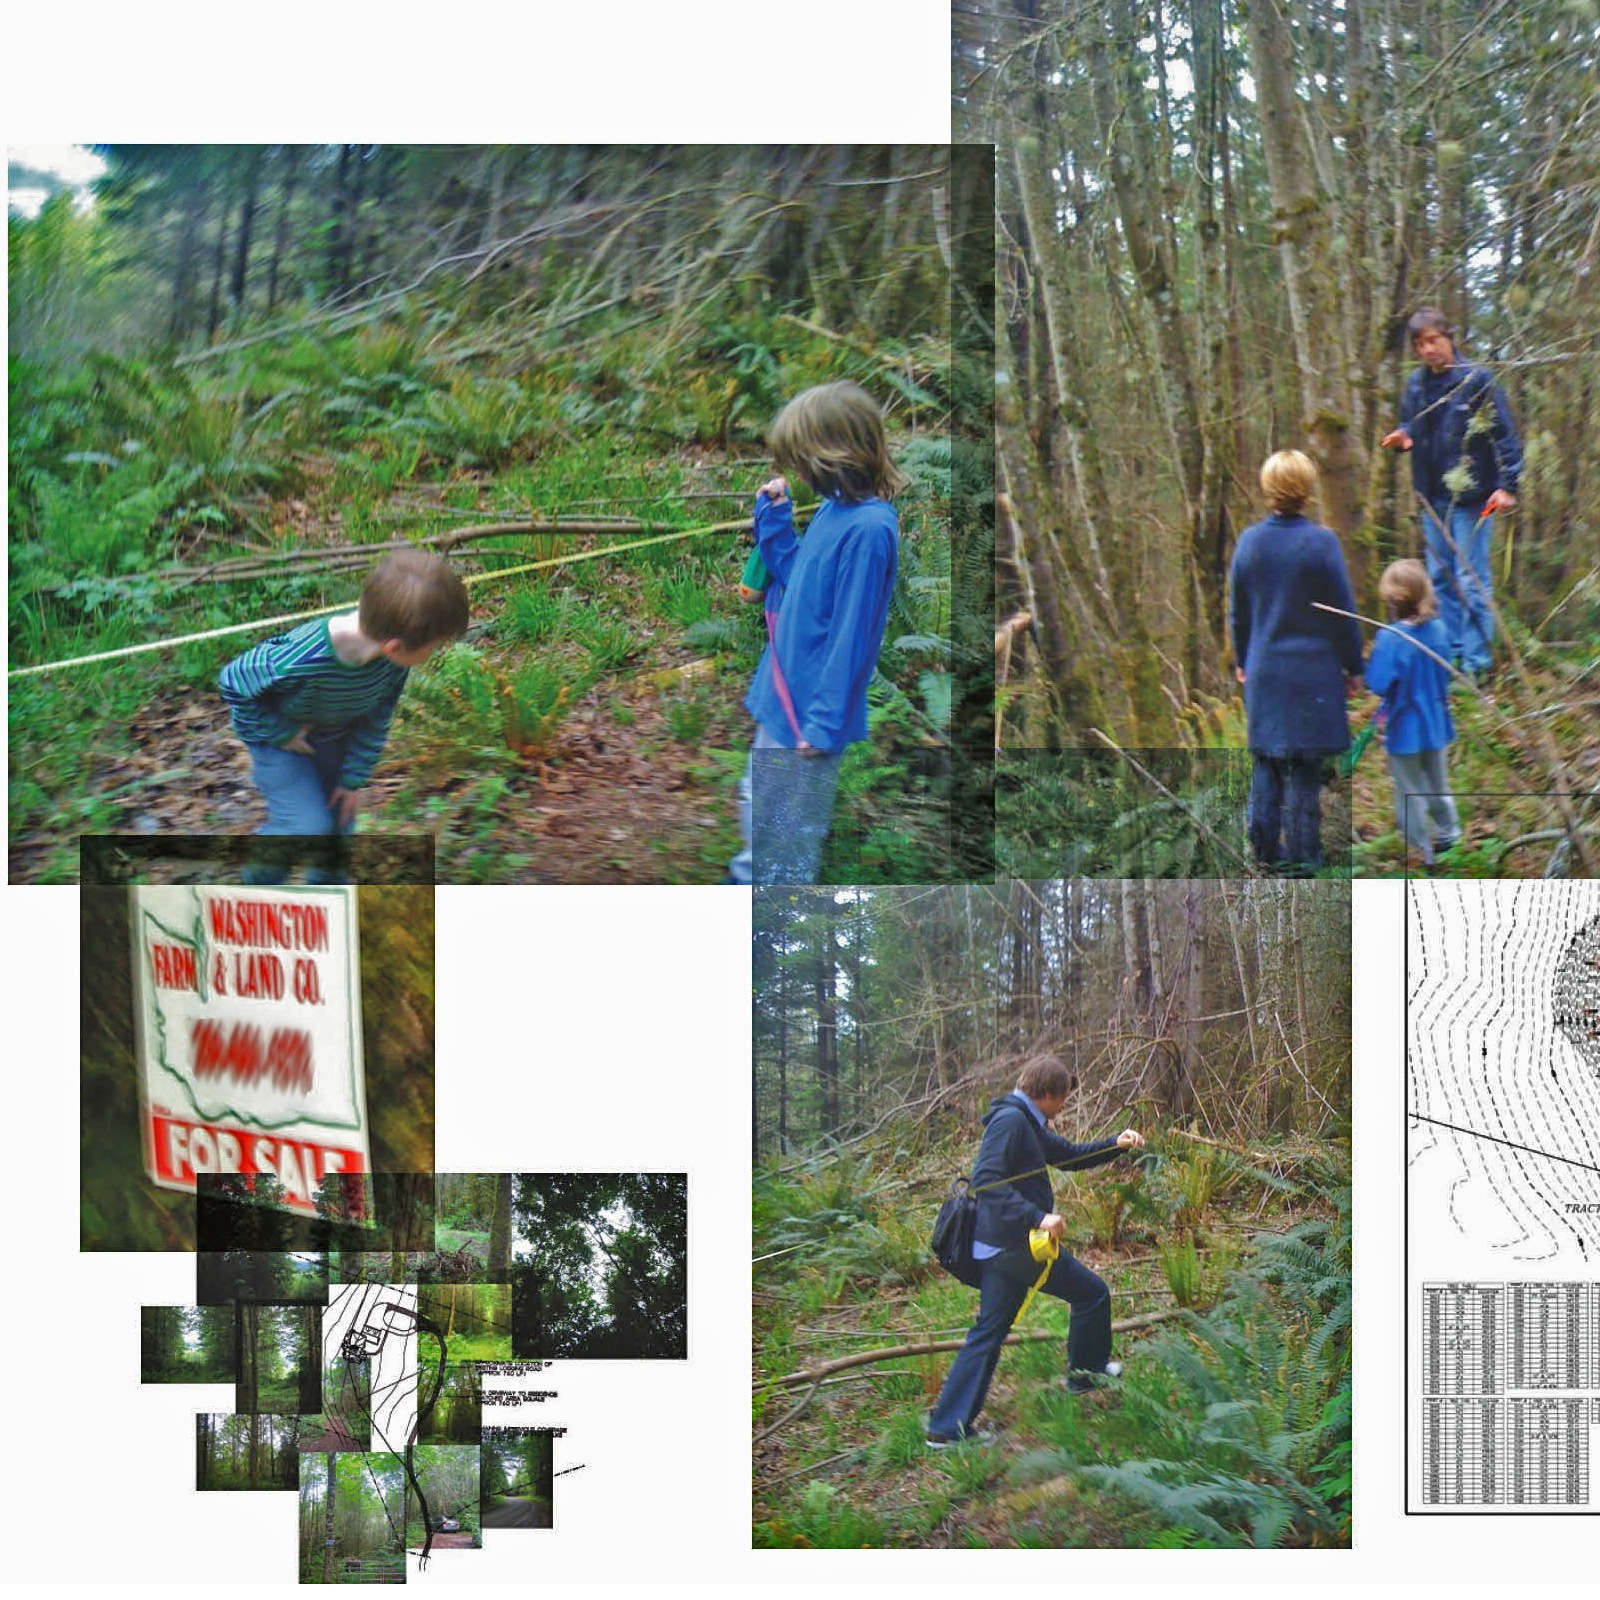 Scenes from the site visit with Olson Kundig. Top left: Jack (left) and Henry (right) check out the proposed outline of the house. Tom Kundig explains prospect and refuge to Kim and Henry. Bottom left: the property sign outside the entrance to the site. B